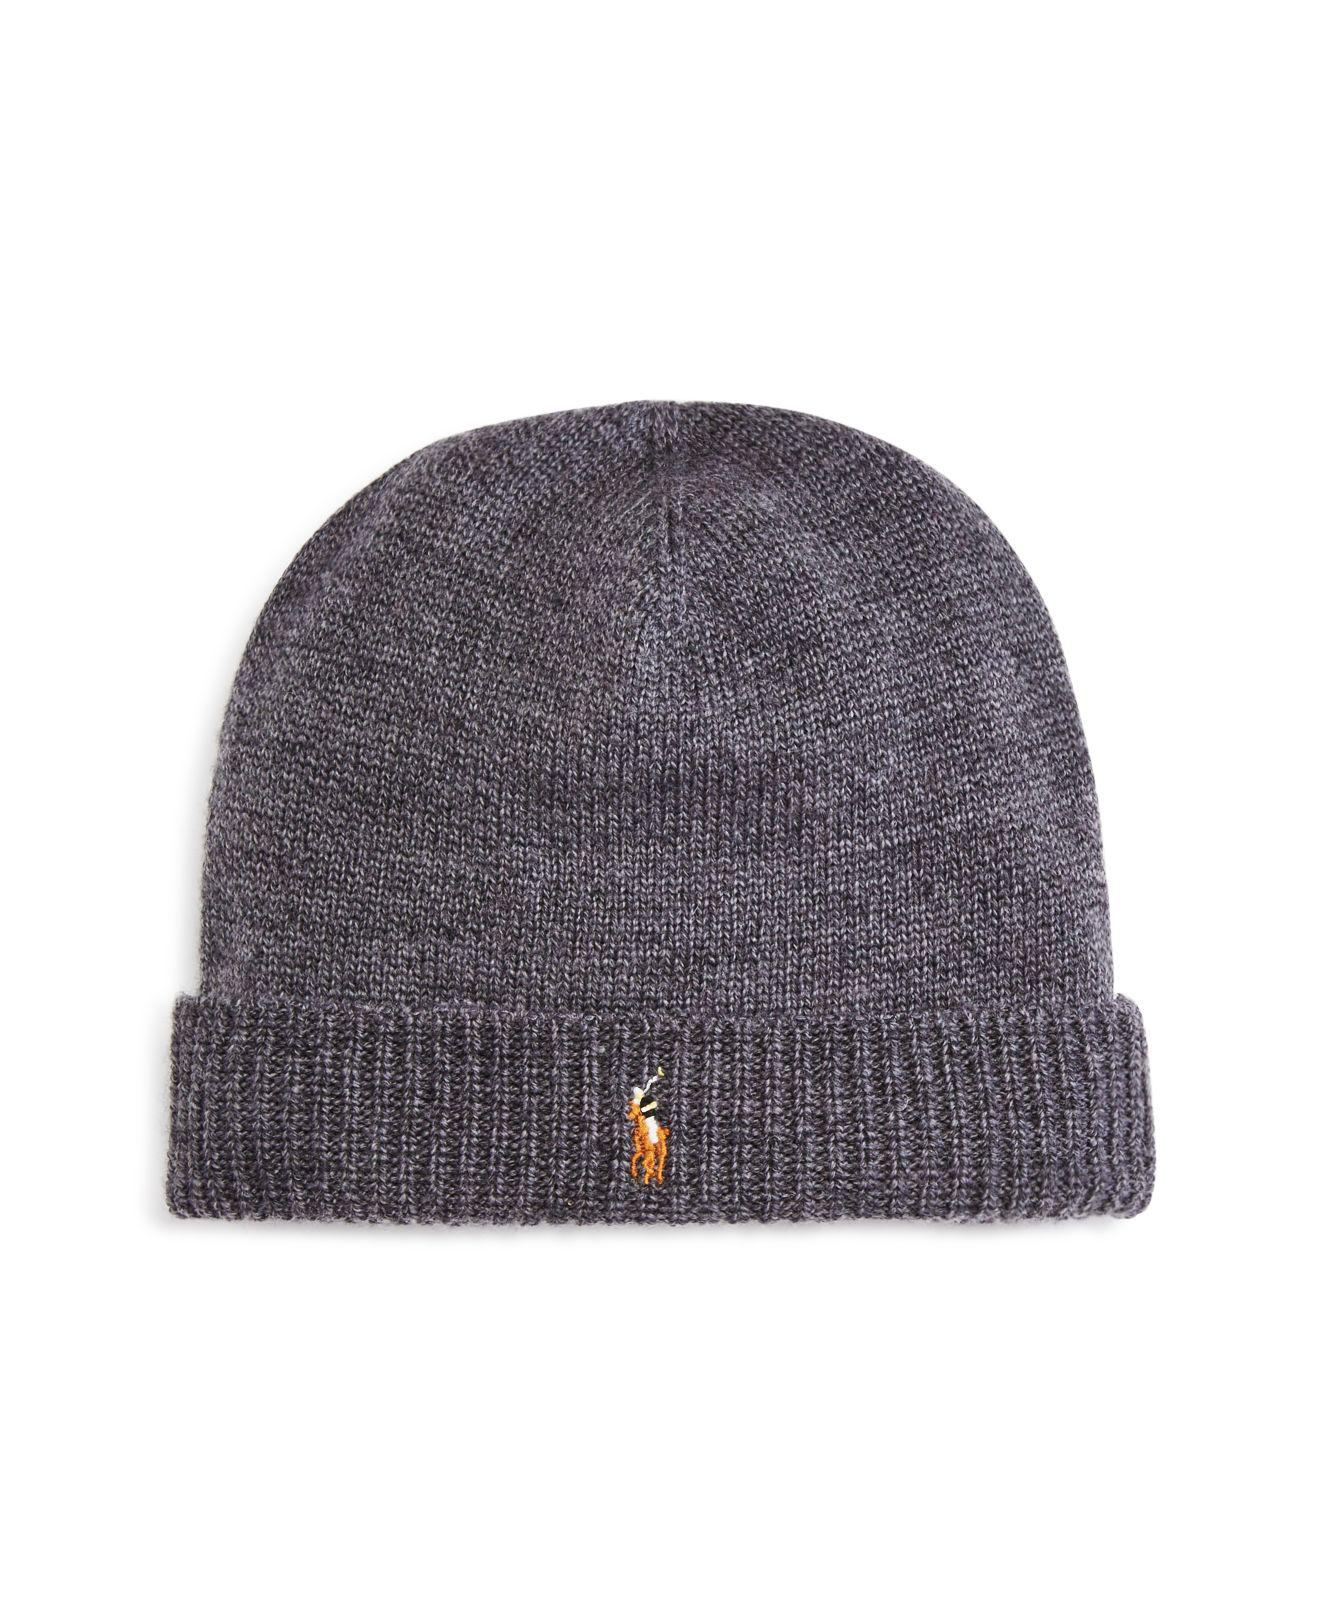 dae03628 Lyst - Polo Ralph Lauren Lux Merino Cuff Hat in Gray for Men